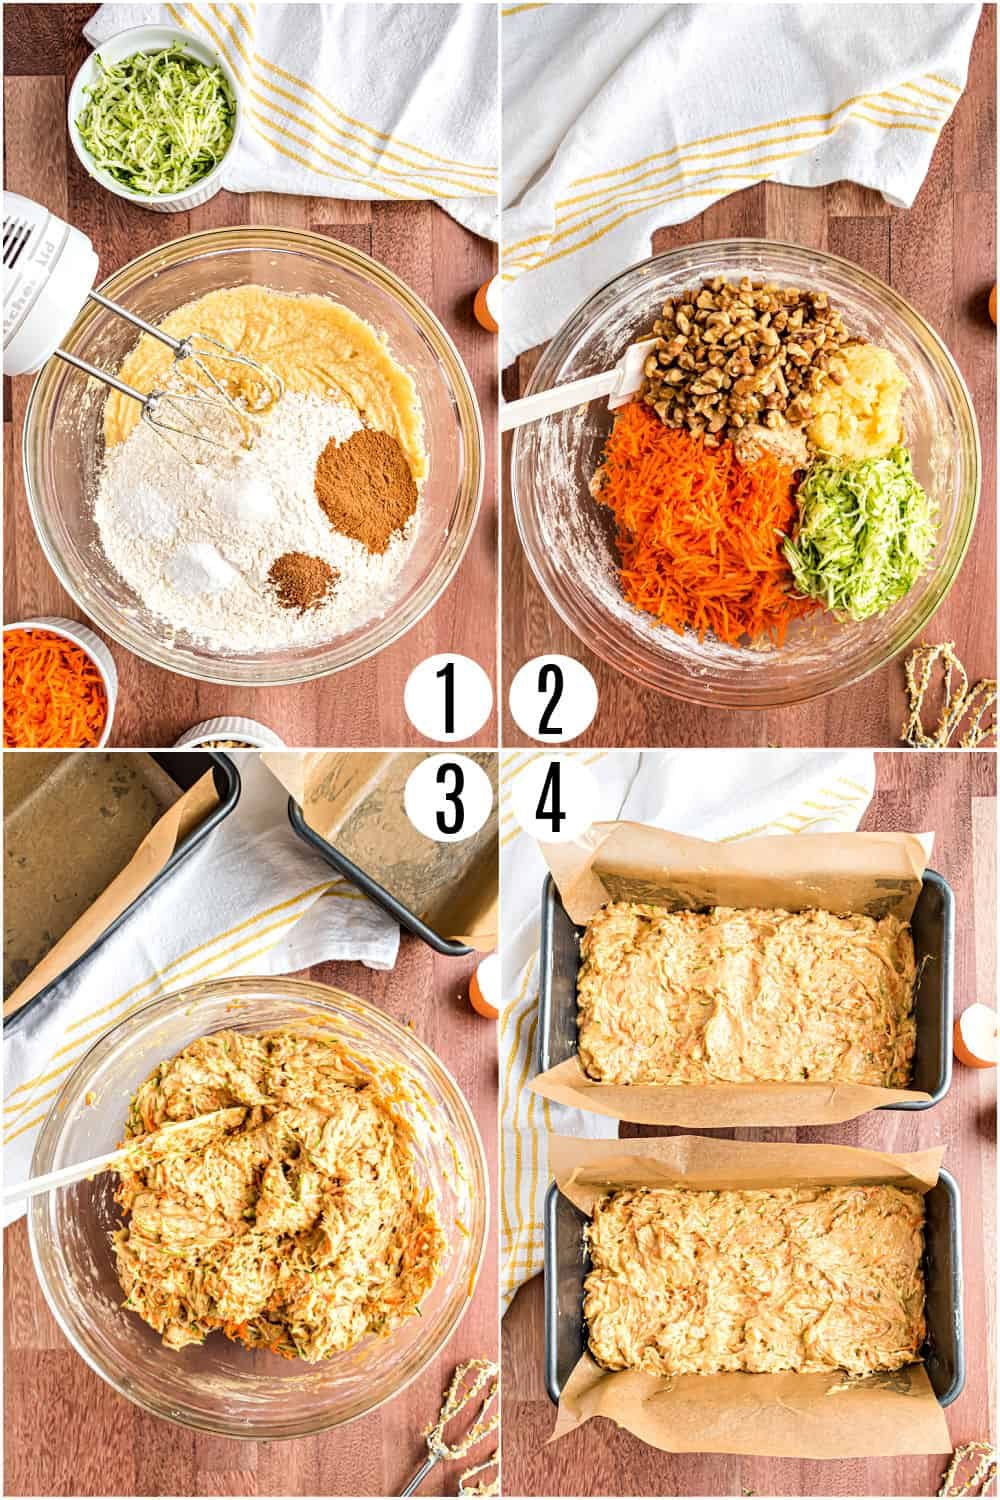 Step by step photos showing how to make pineapple carrot zucchini bread.